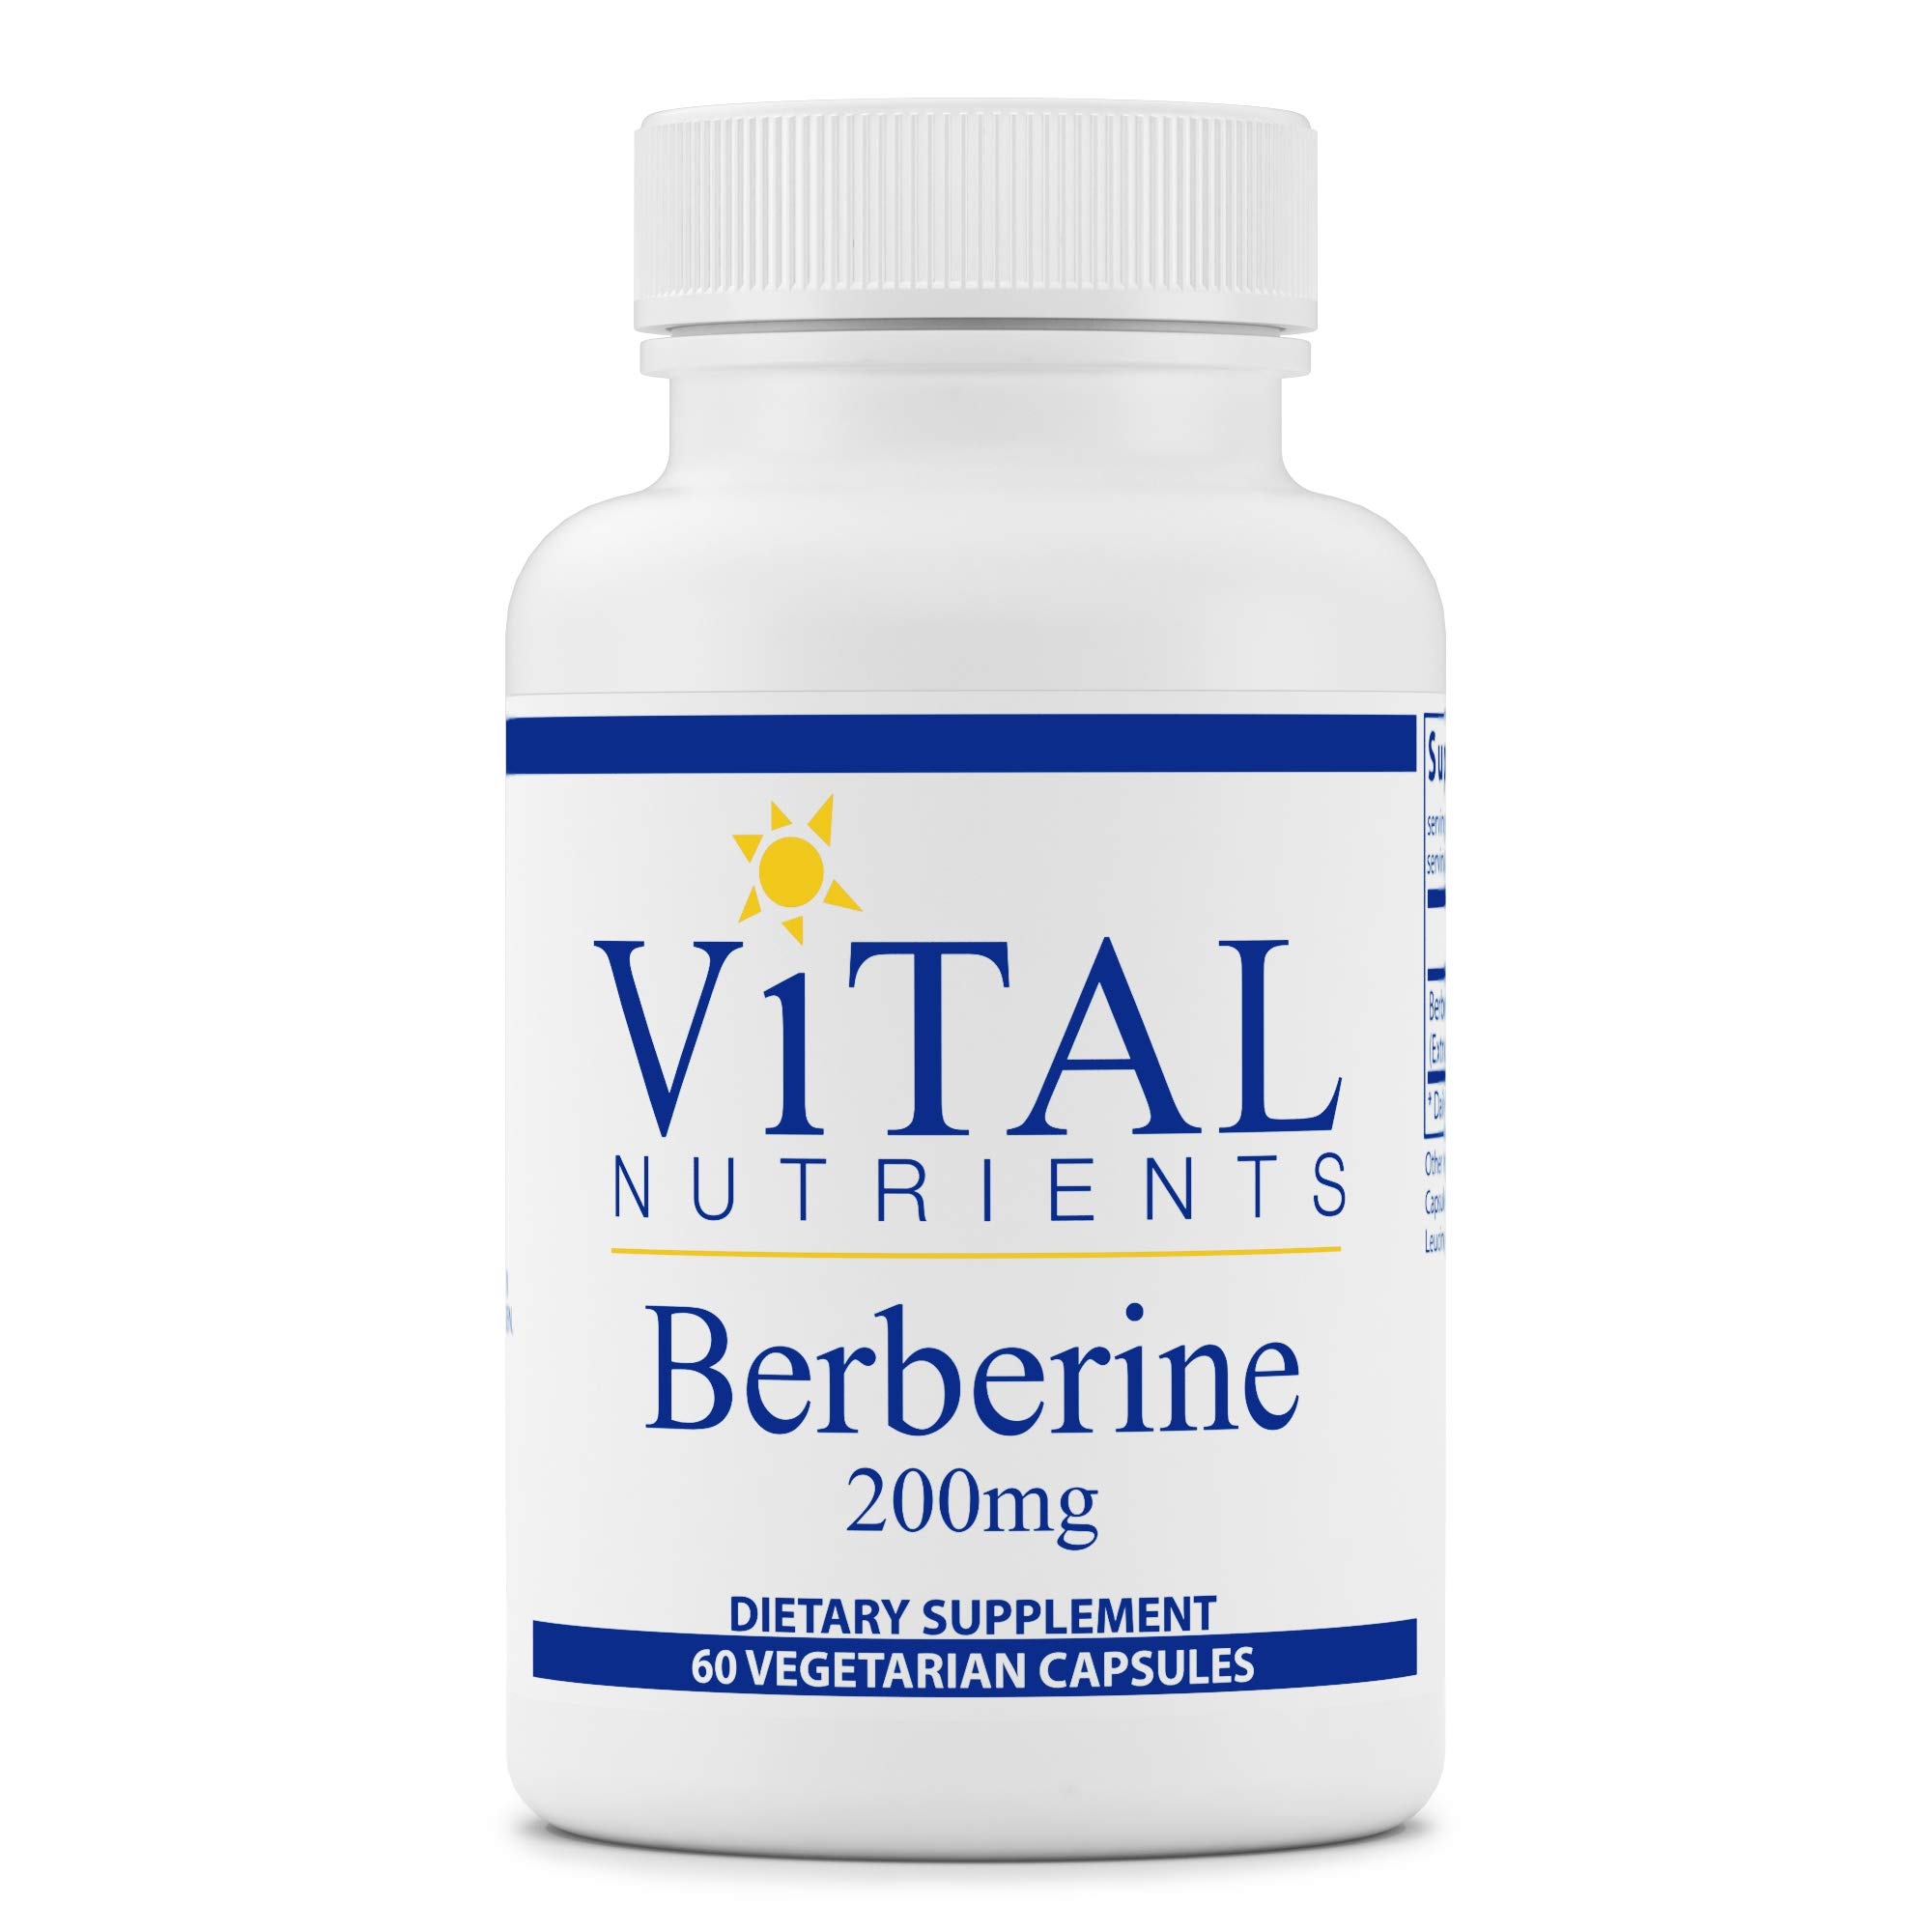 Vital Nutrients - Berberine 200 mg - Vegan Formula - Promotes Healthy Blood Sugar Levels, Regulates Bowel Function, Helps Maintain Normal Triglyceride Levels - 60 Vegetarian Capsules per Bottle